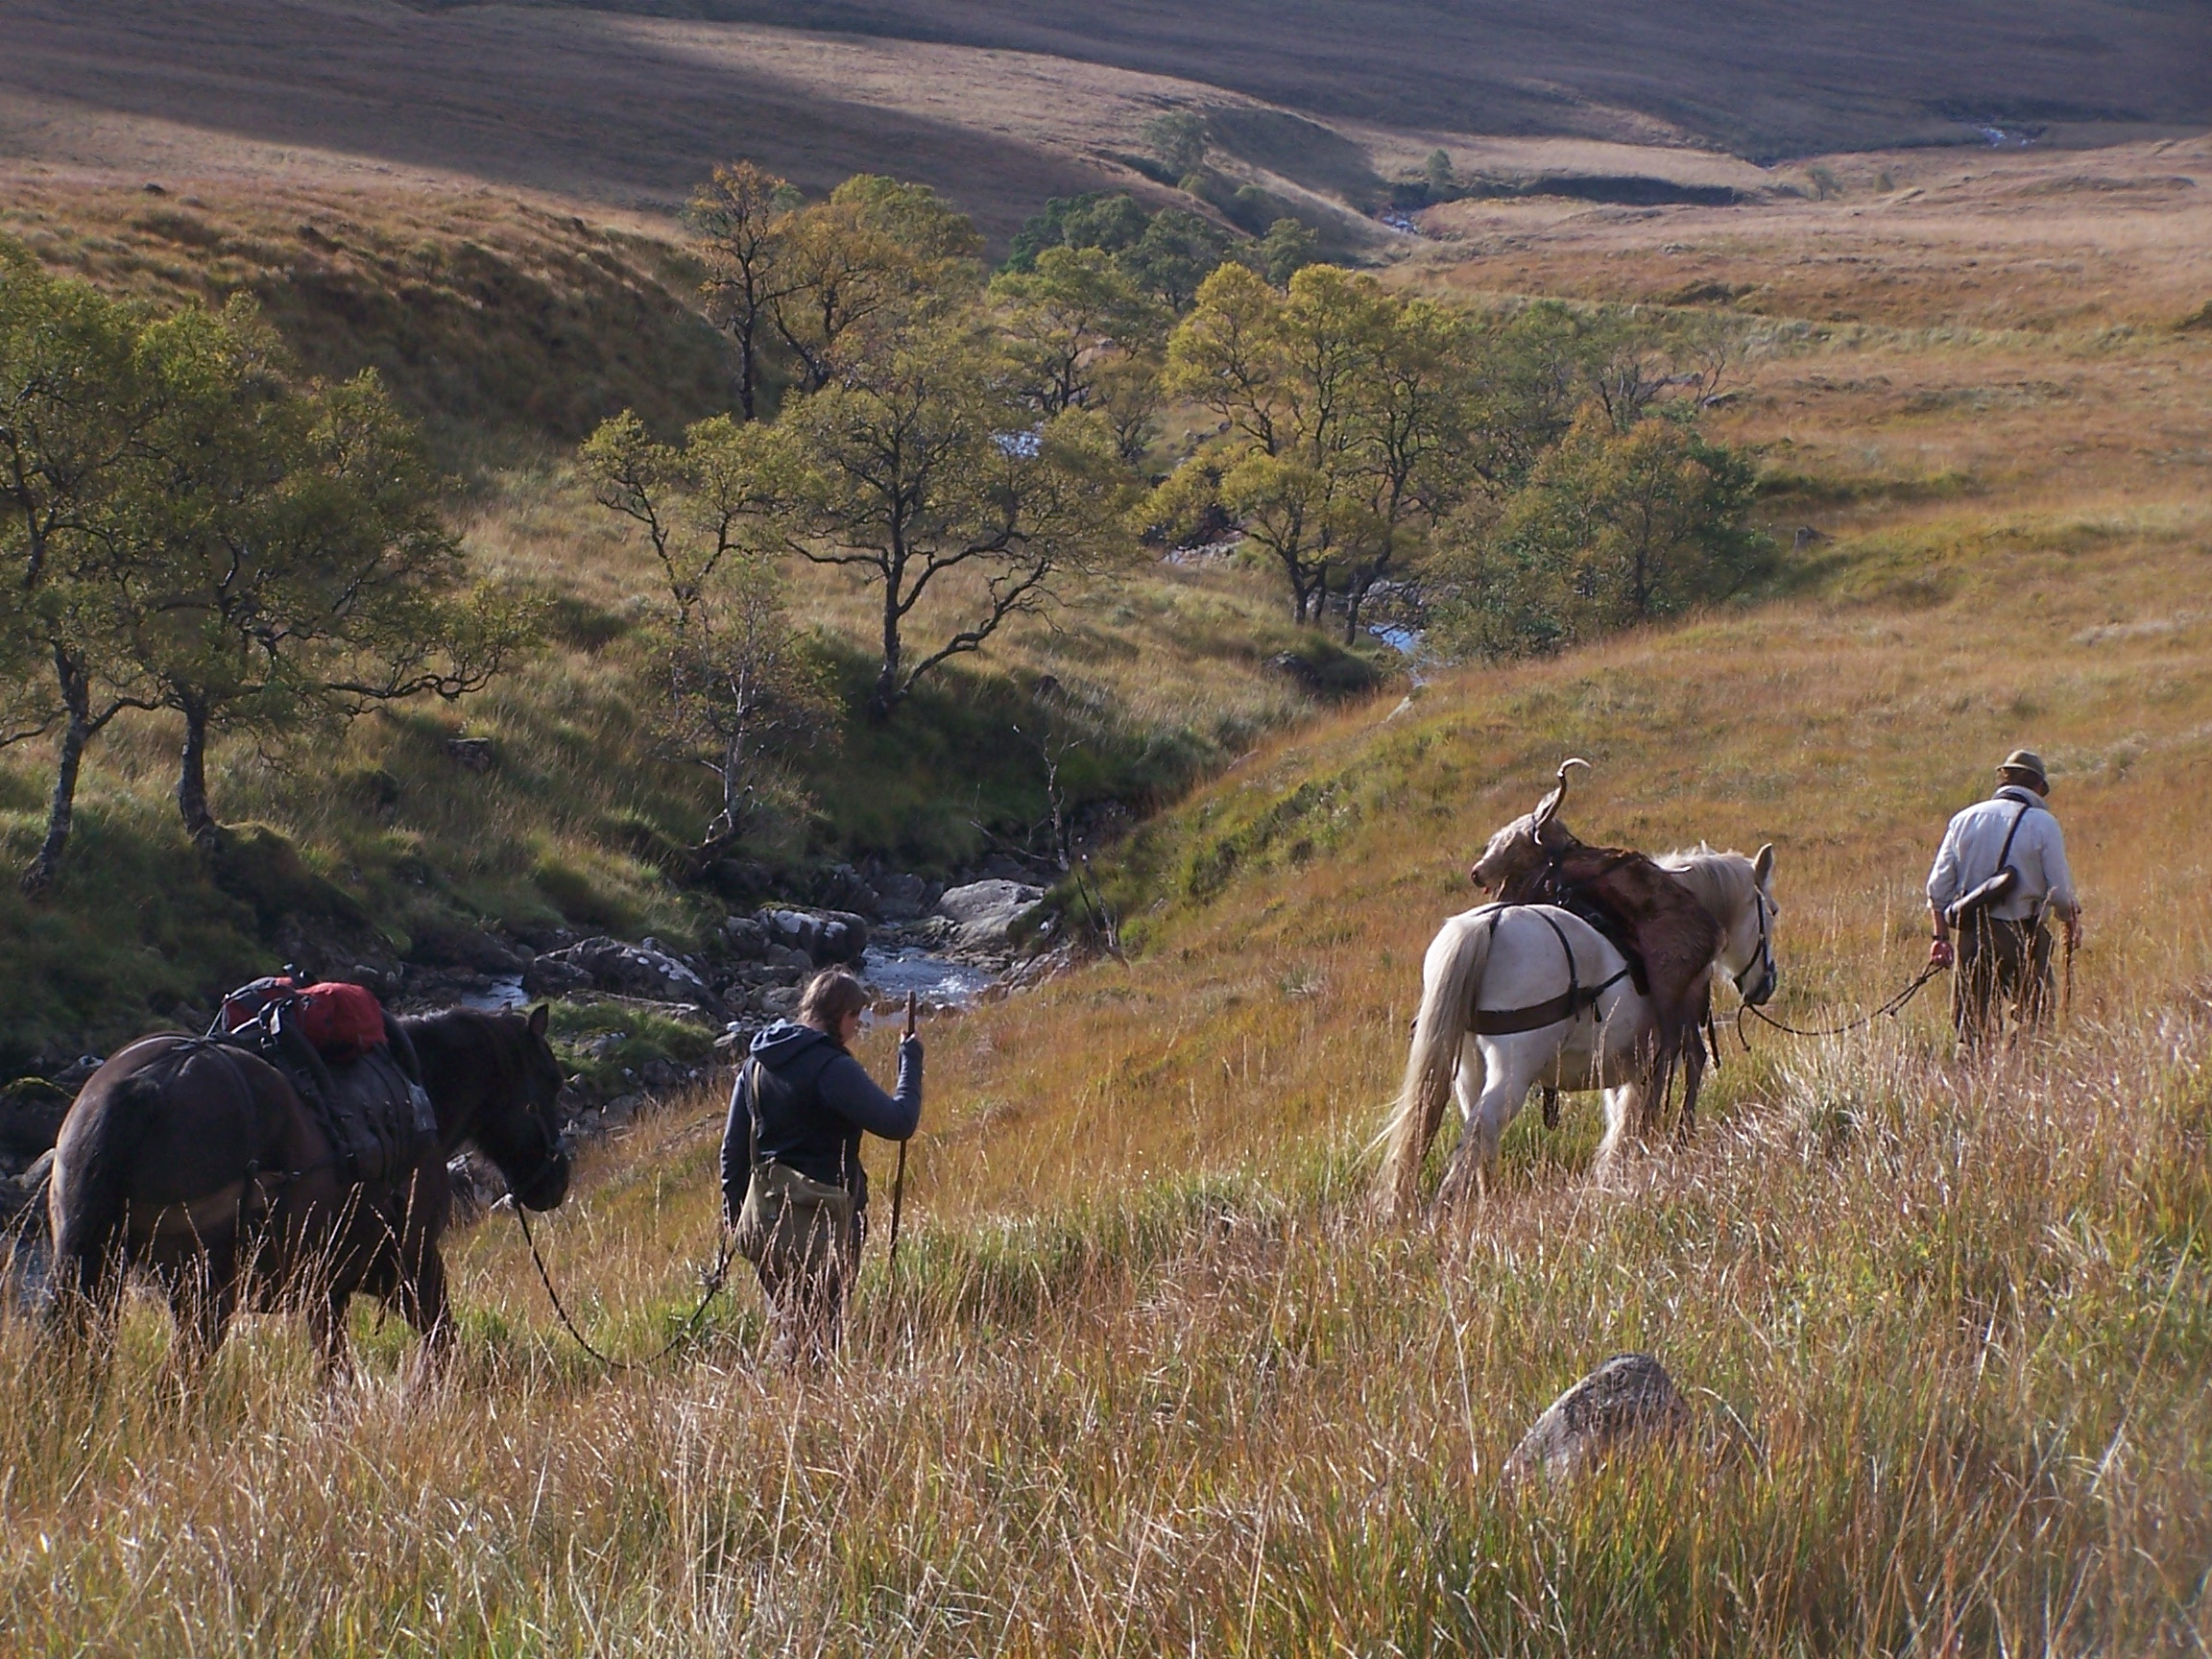 Pony carrying stag